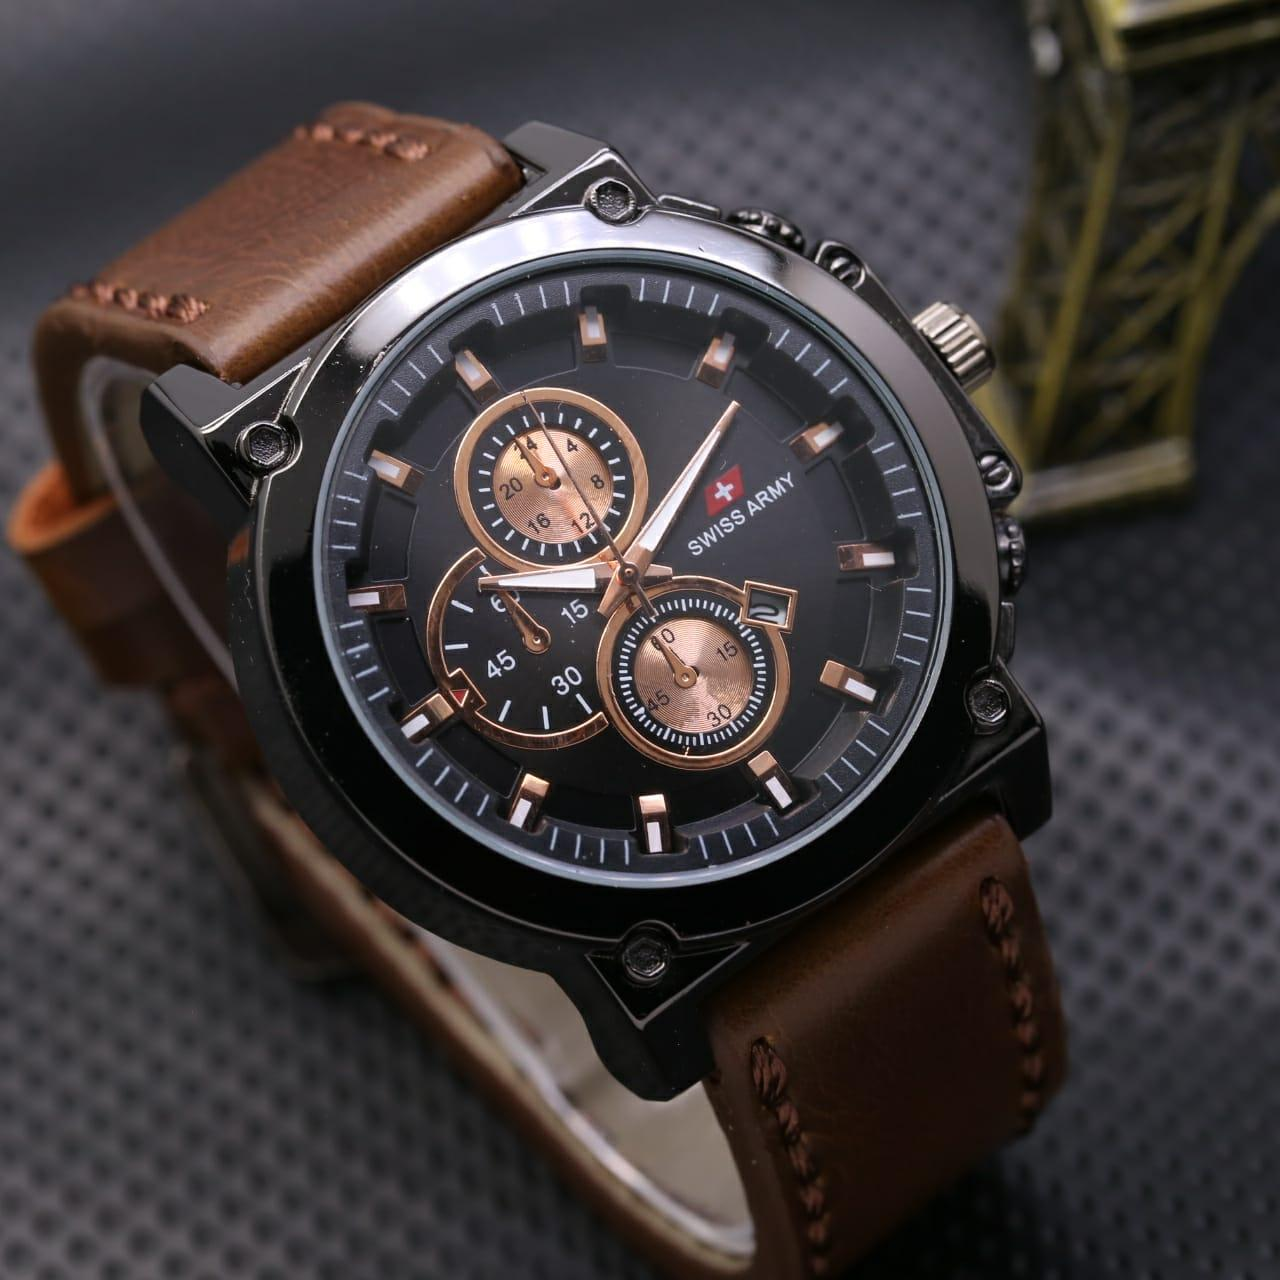 Jam Tangan Pria Casual Leather Strap Sevenfriday New Edition Christ Verra  Klasik Tali Kulit Original Hitam da62b2e26d